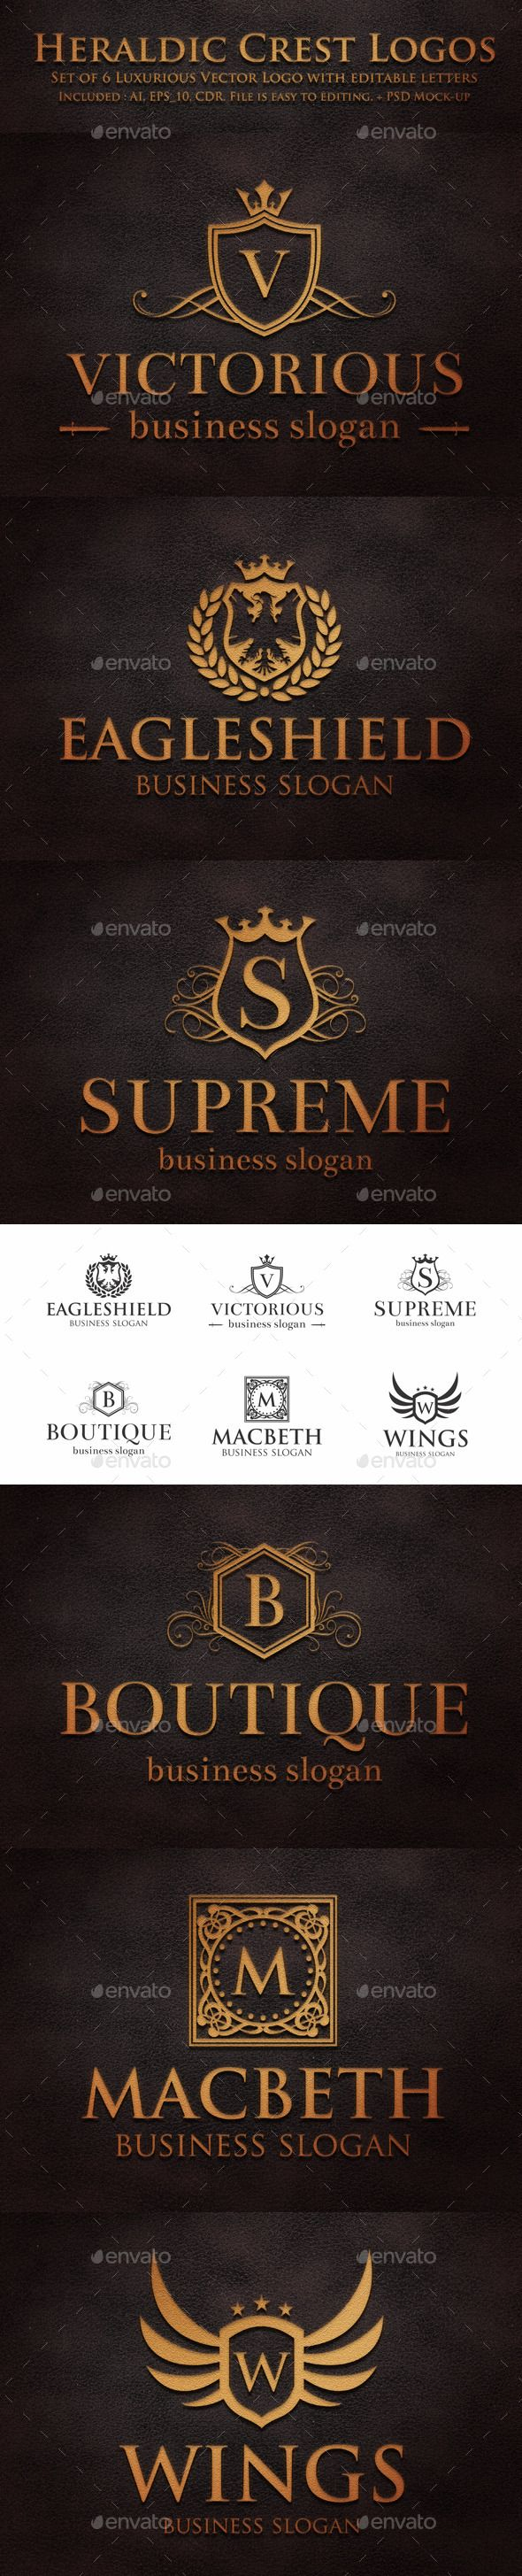 Luxurious Heraldic Crest Logos – Retro Vintage Royal Luxury Elegant crests and emblems.  Royal Heraldic Elegant Logo Collection – Vintage coat of arms – Fashion & Elegant company logotypes.  Royalty Logo Crests – Suitable for businesses and product names, luxury industry like Hotel, Wedding, Real Estate, Leisure business, Luxury restaurant, Beauty Salon, Fashion and clothing businesses...